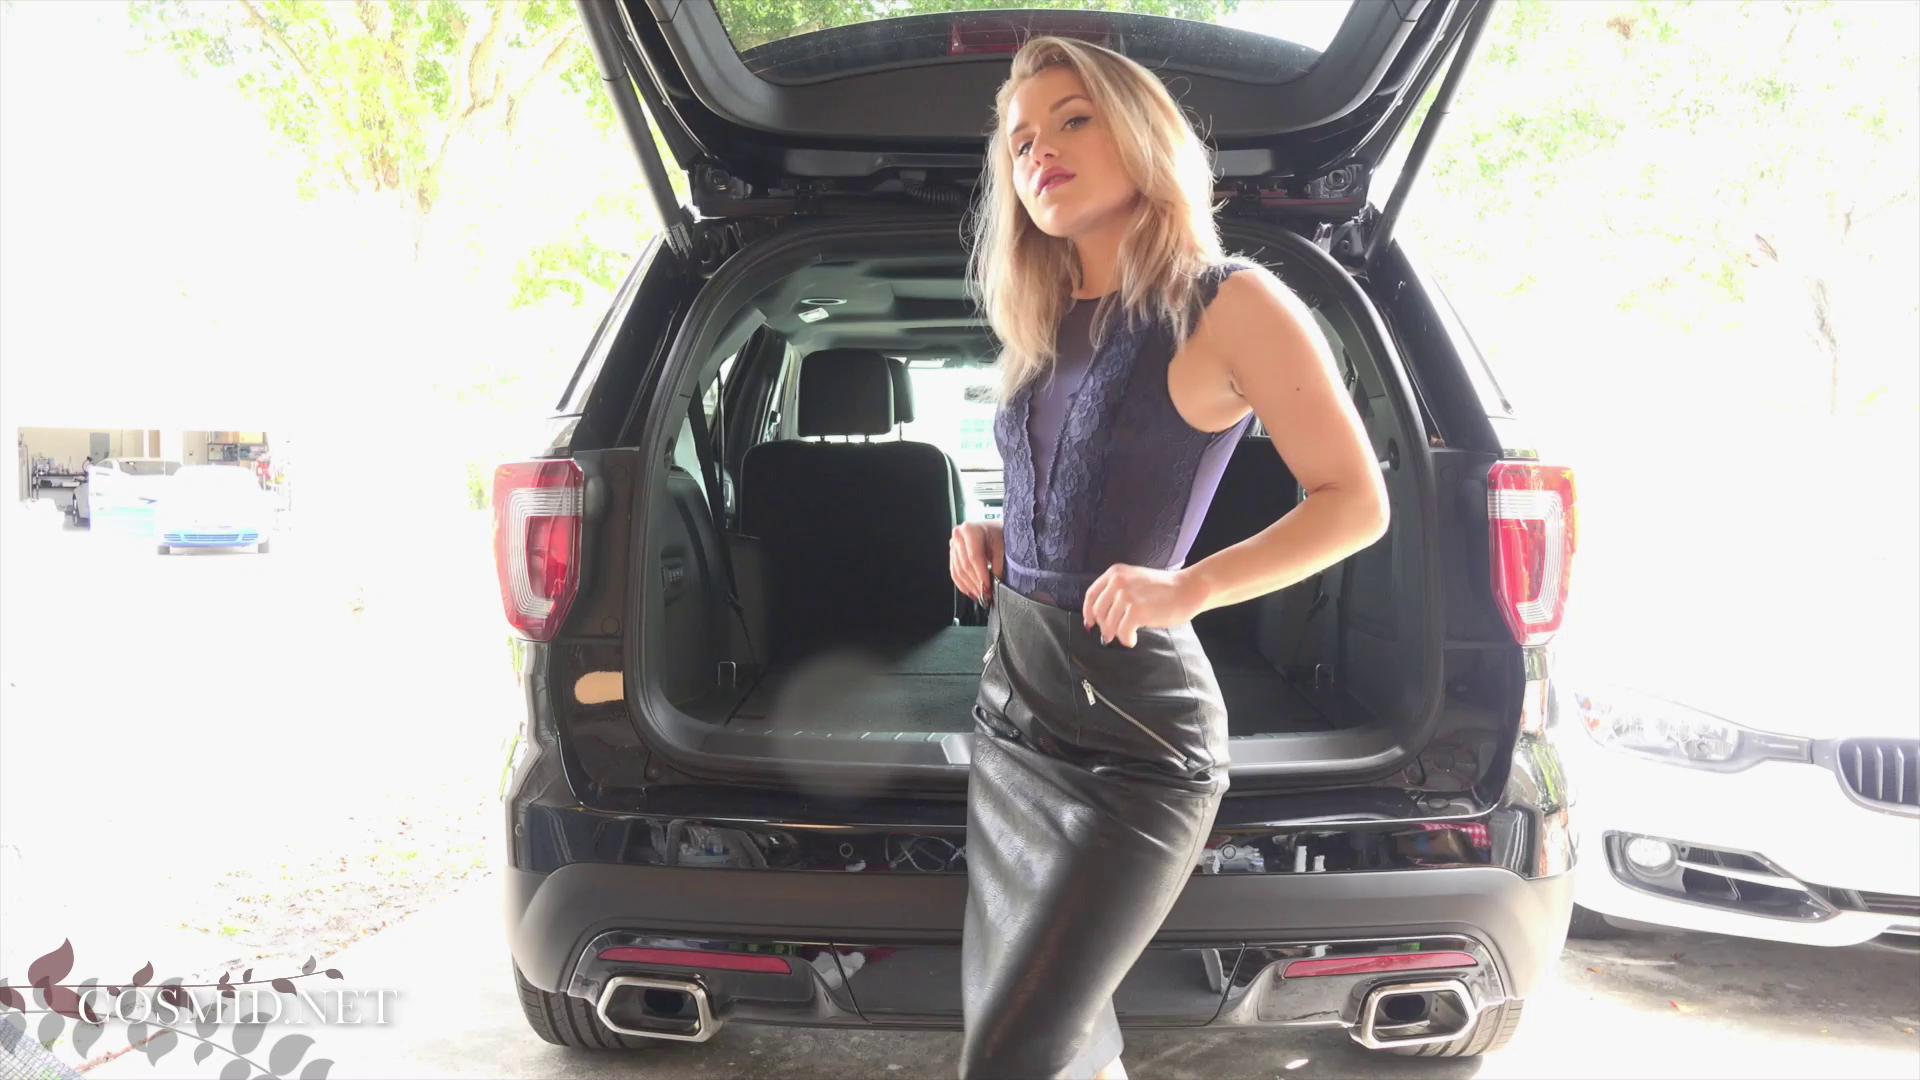 Stefany Rossa In The Trunk